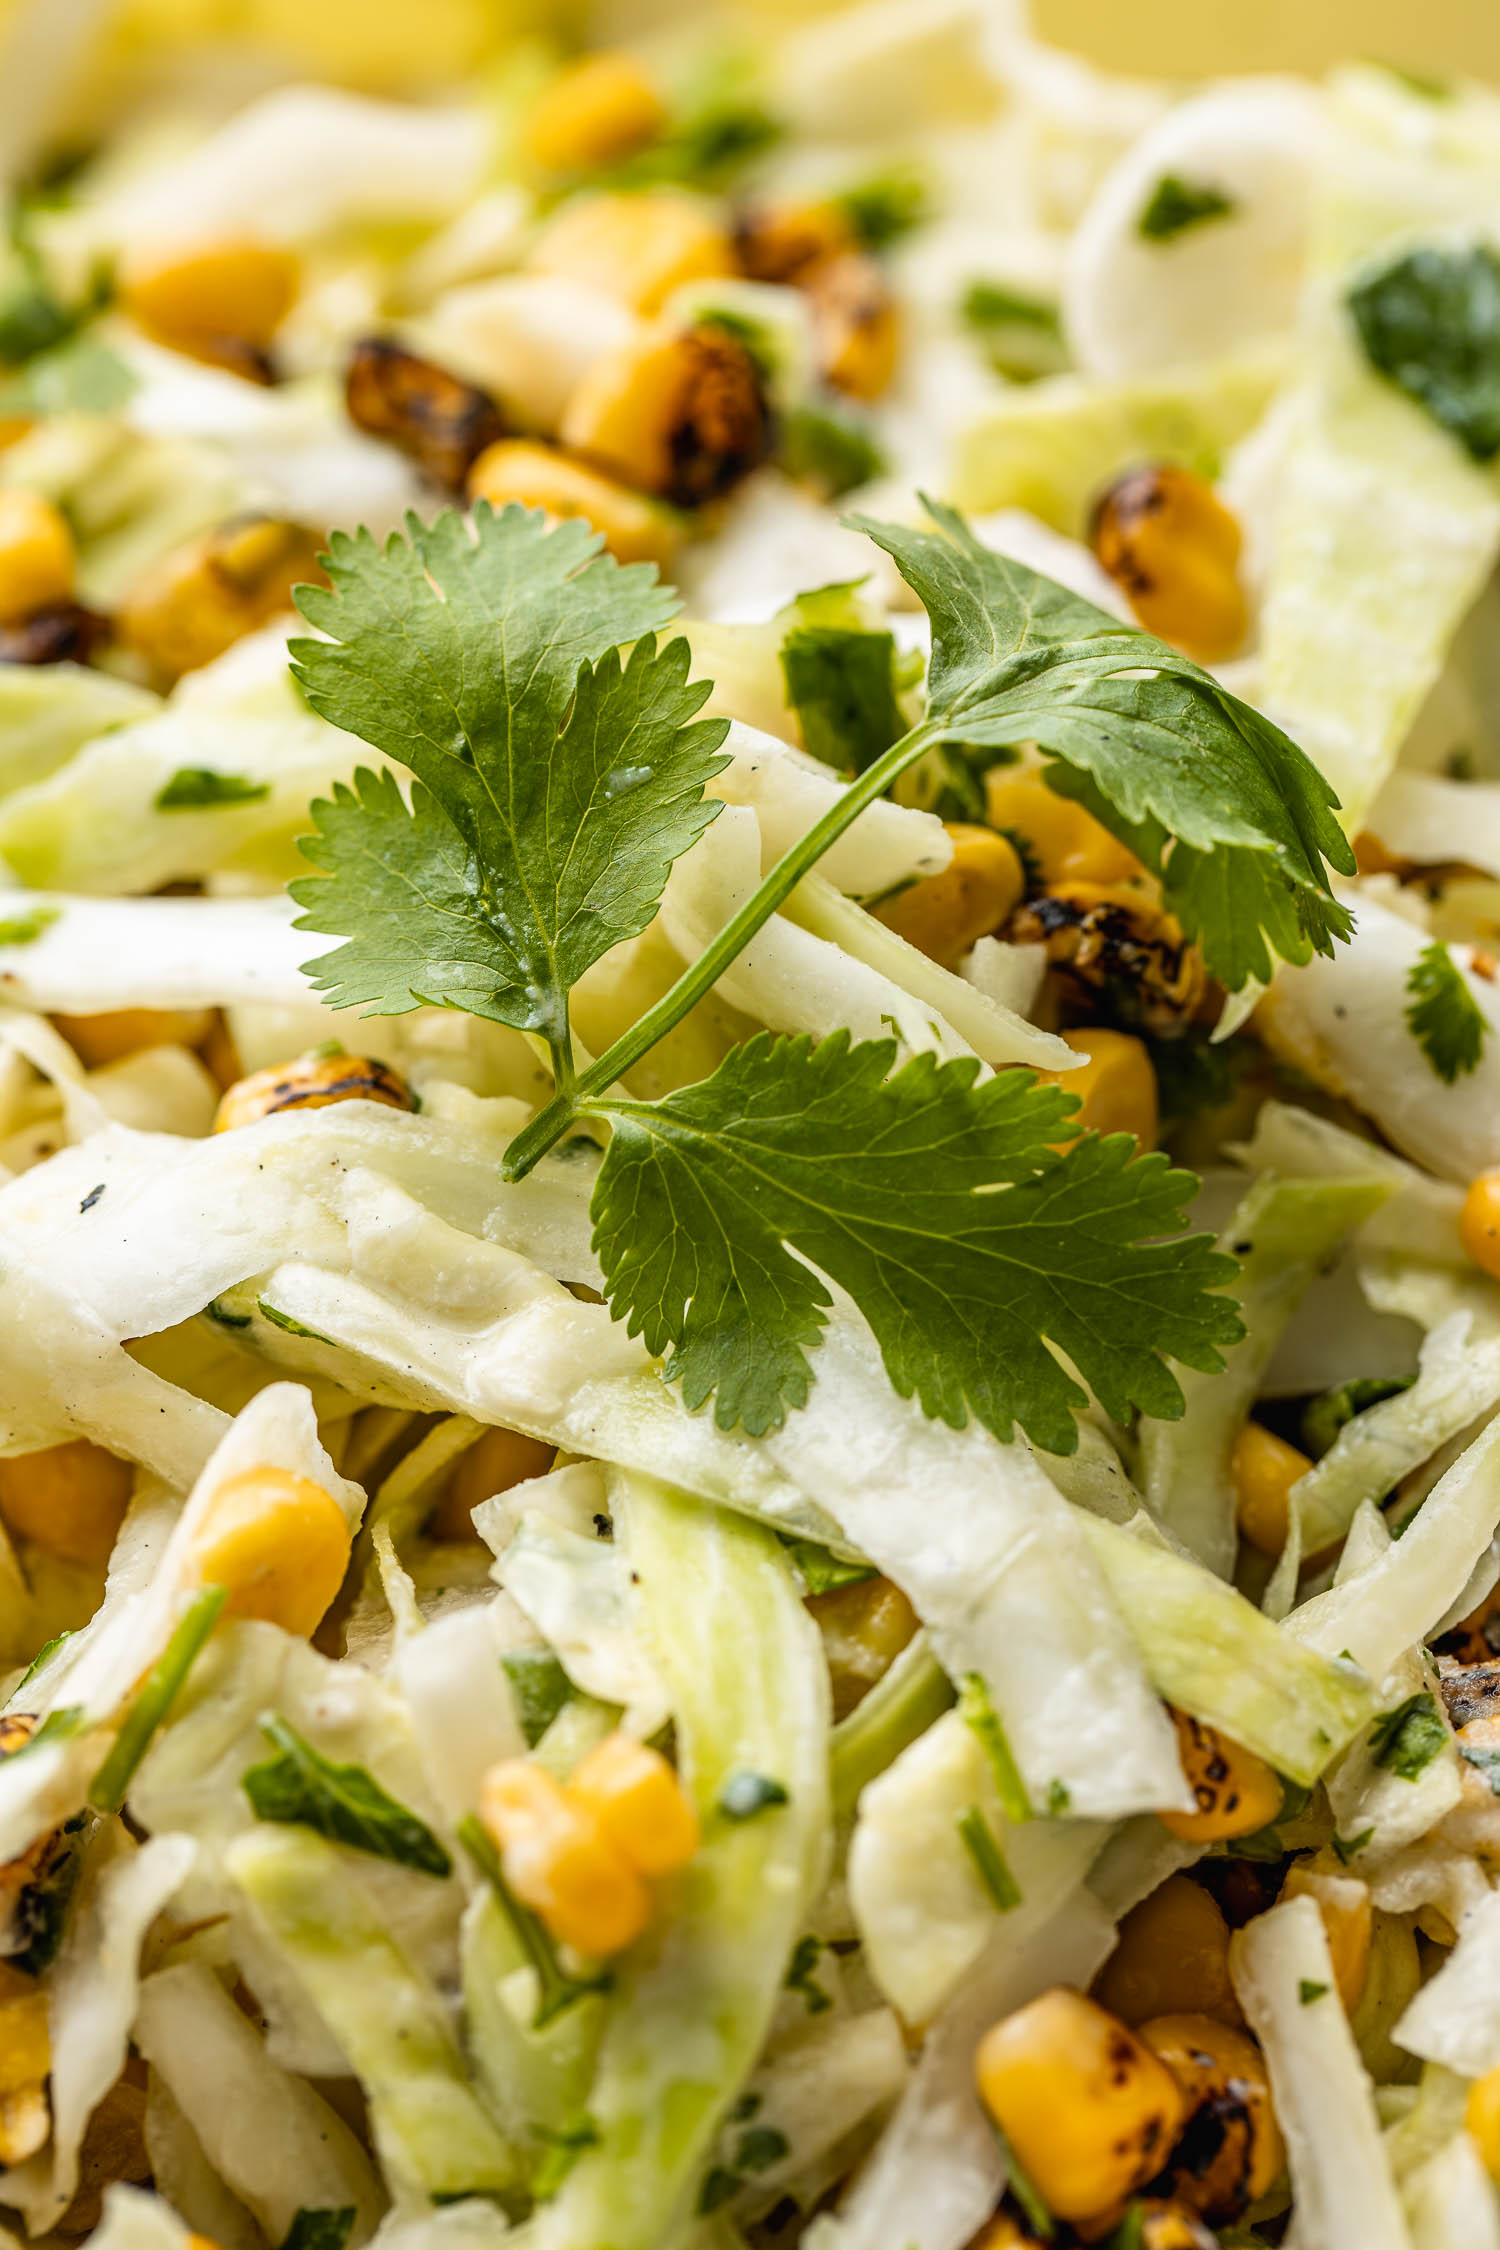 coleslaw with chopped cabbage, cilantro, jalapeno peppers, lime, and a sprig of green cilantro